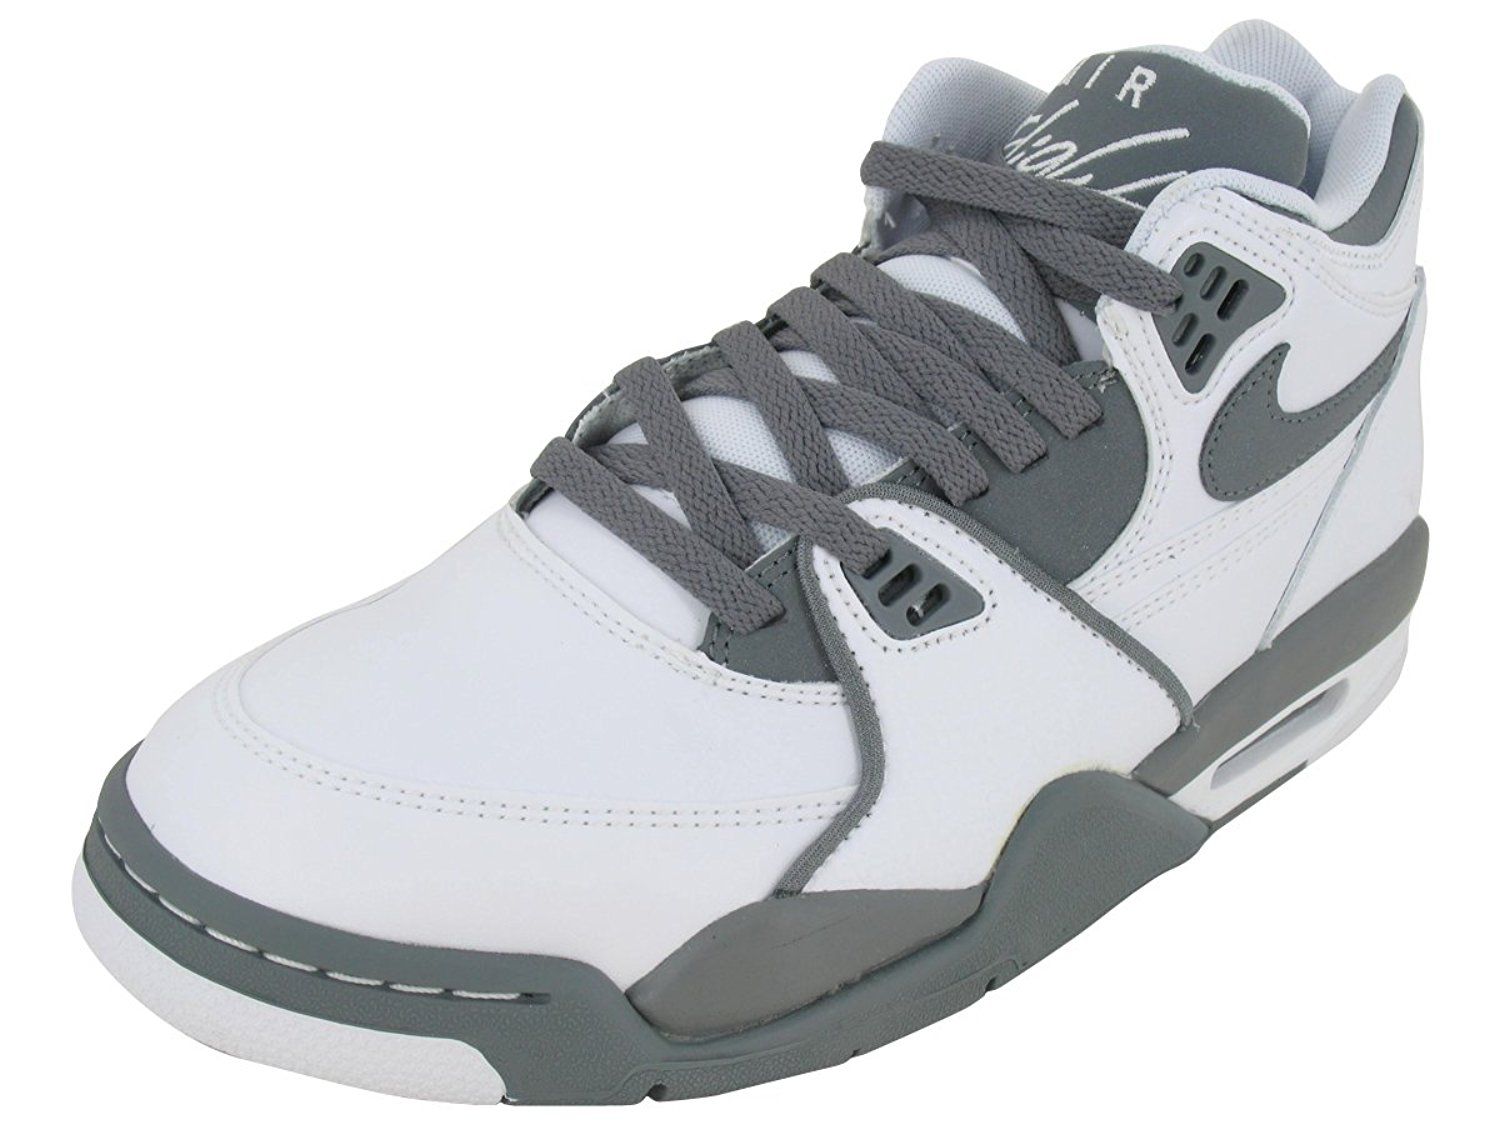 best service 0a575 5b378 Get Quotations · Nike Air Flight 89 Mens Basketball Shoes 306252-109